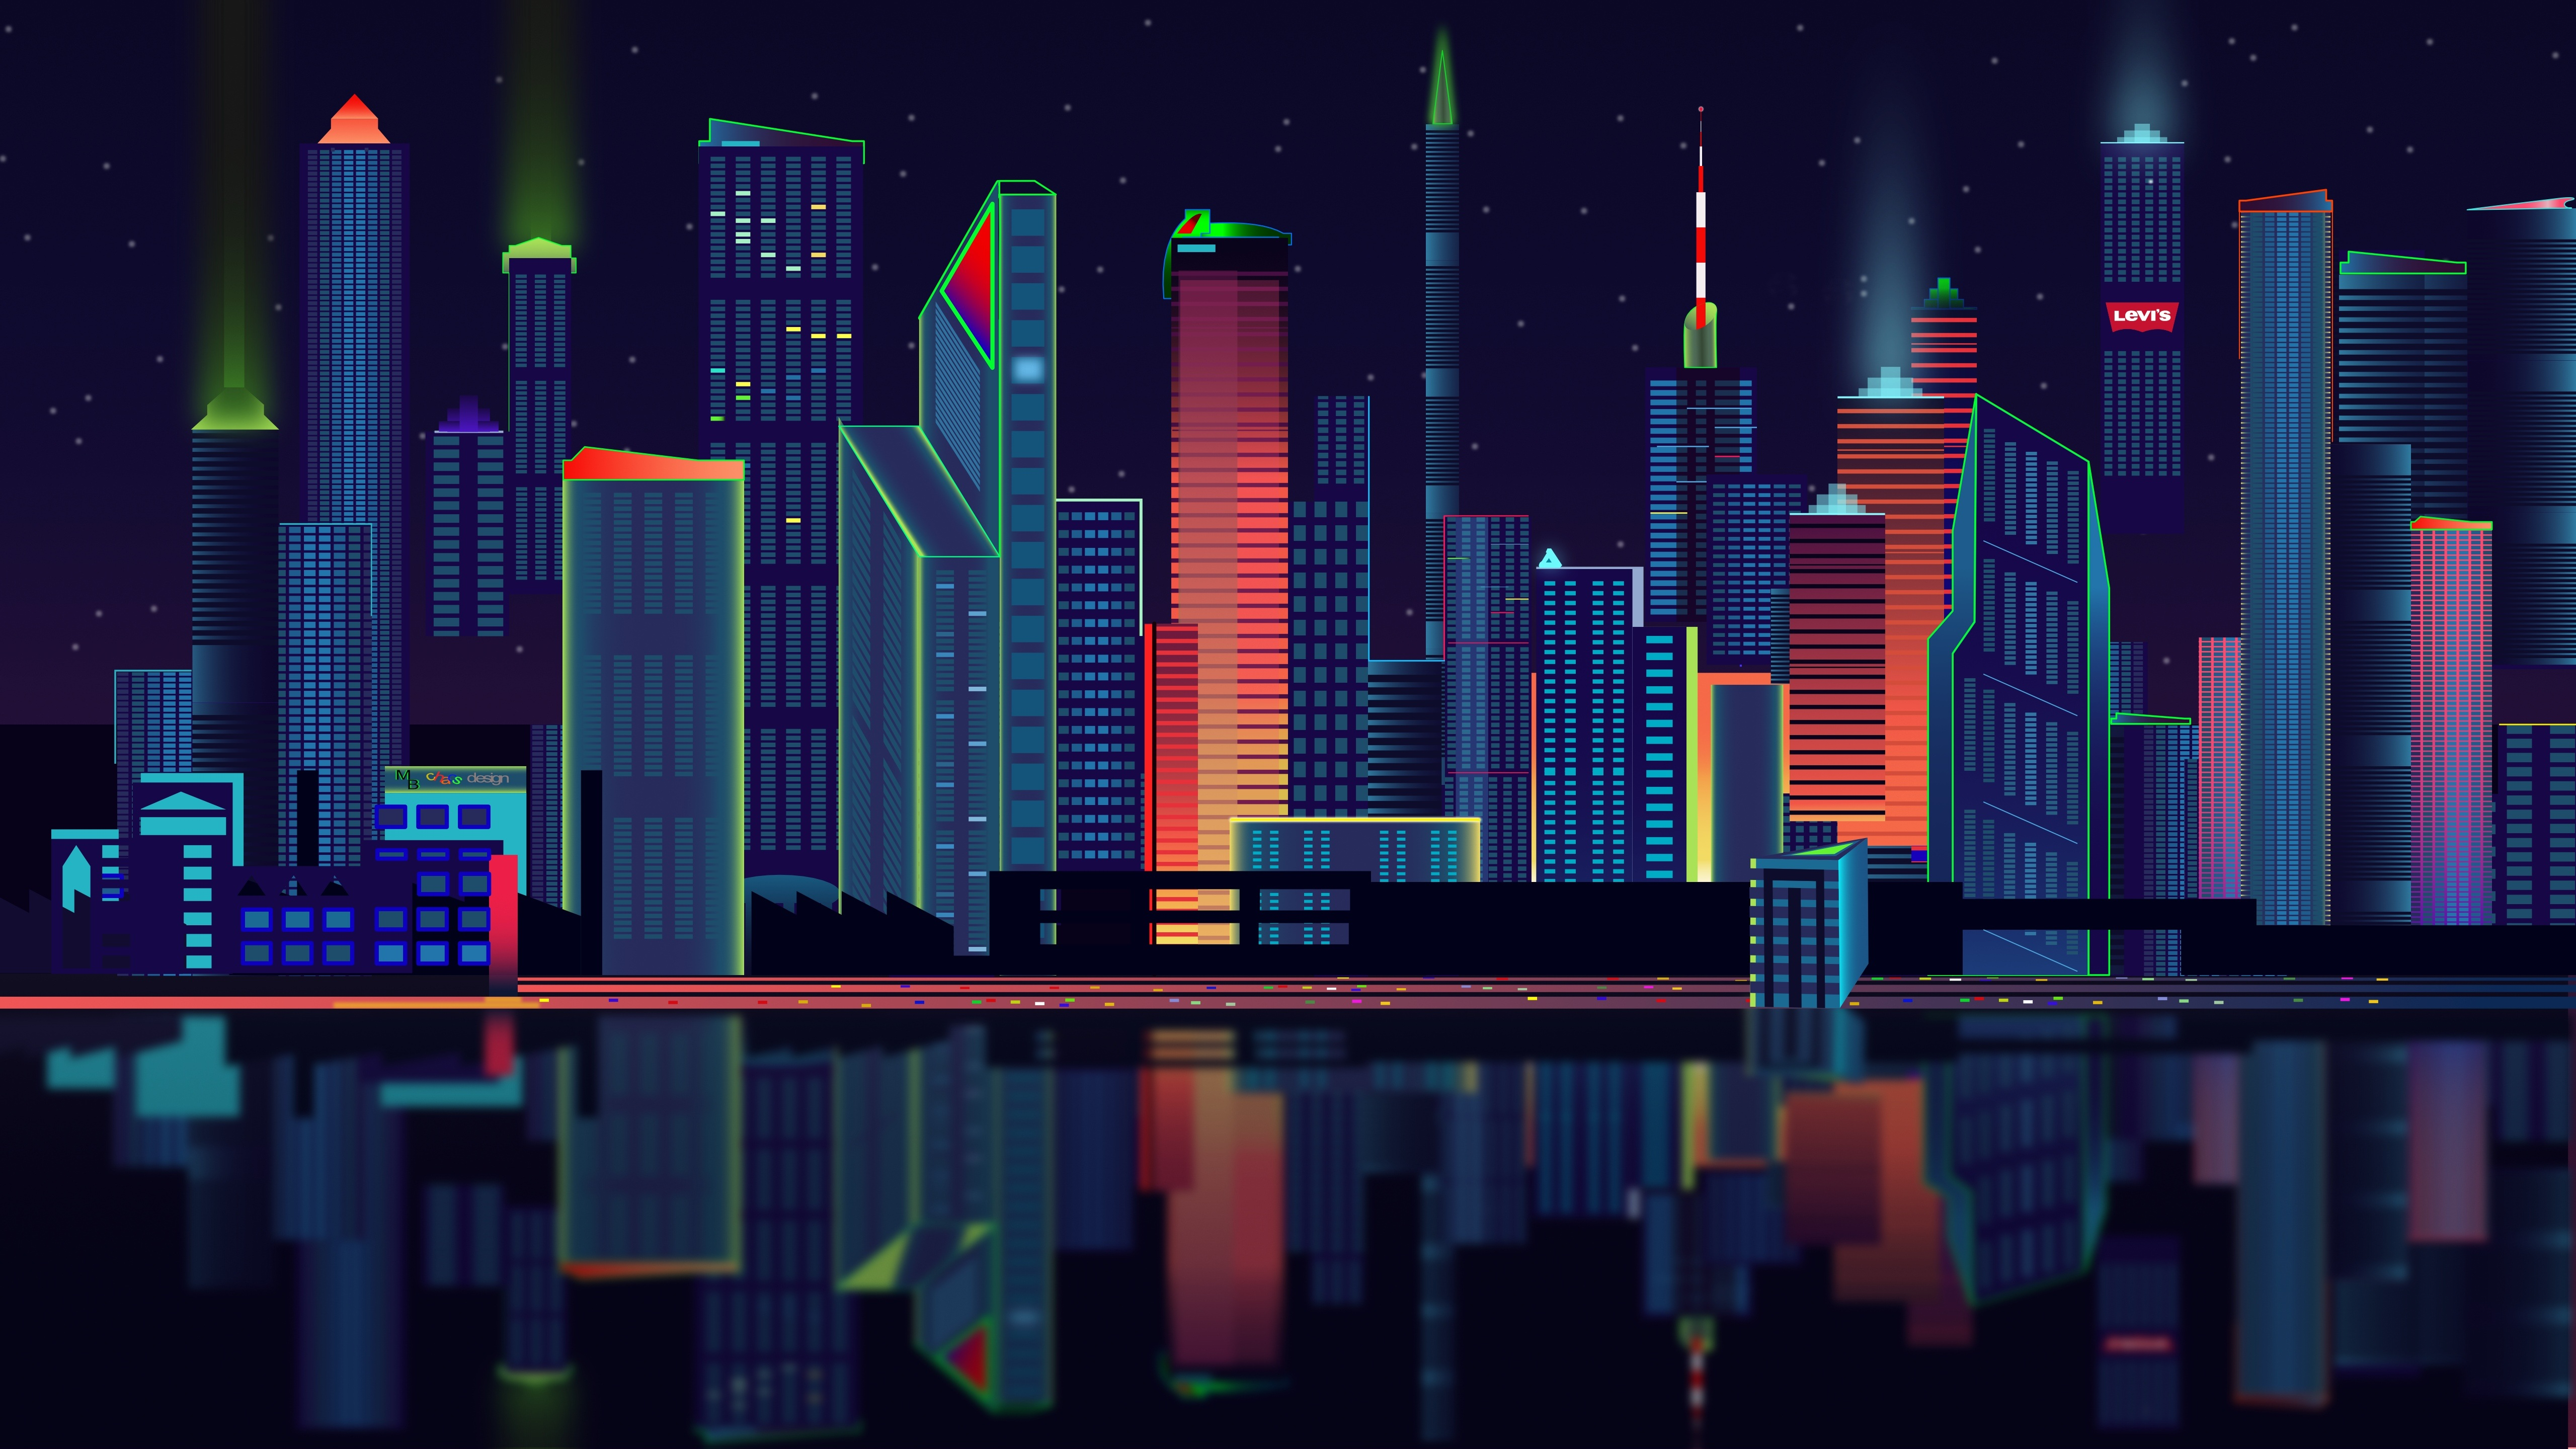 5120x2880 Wallpapers